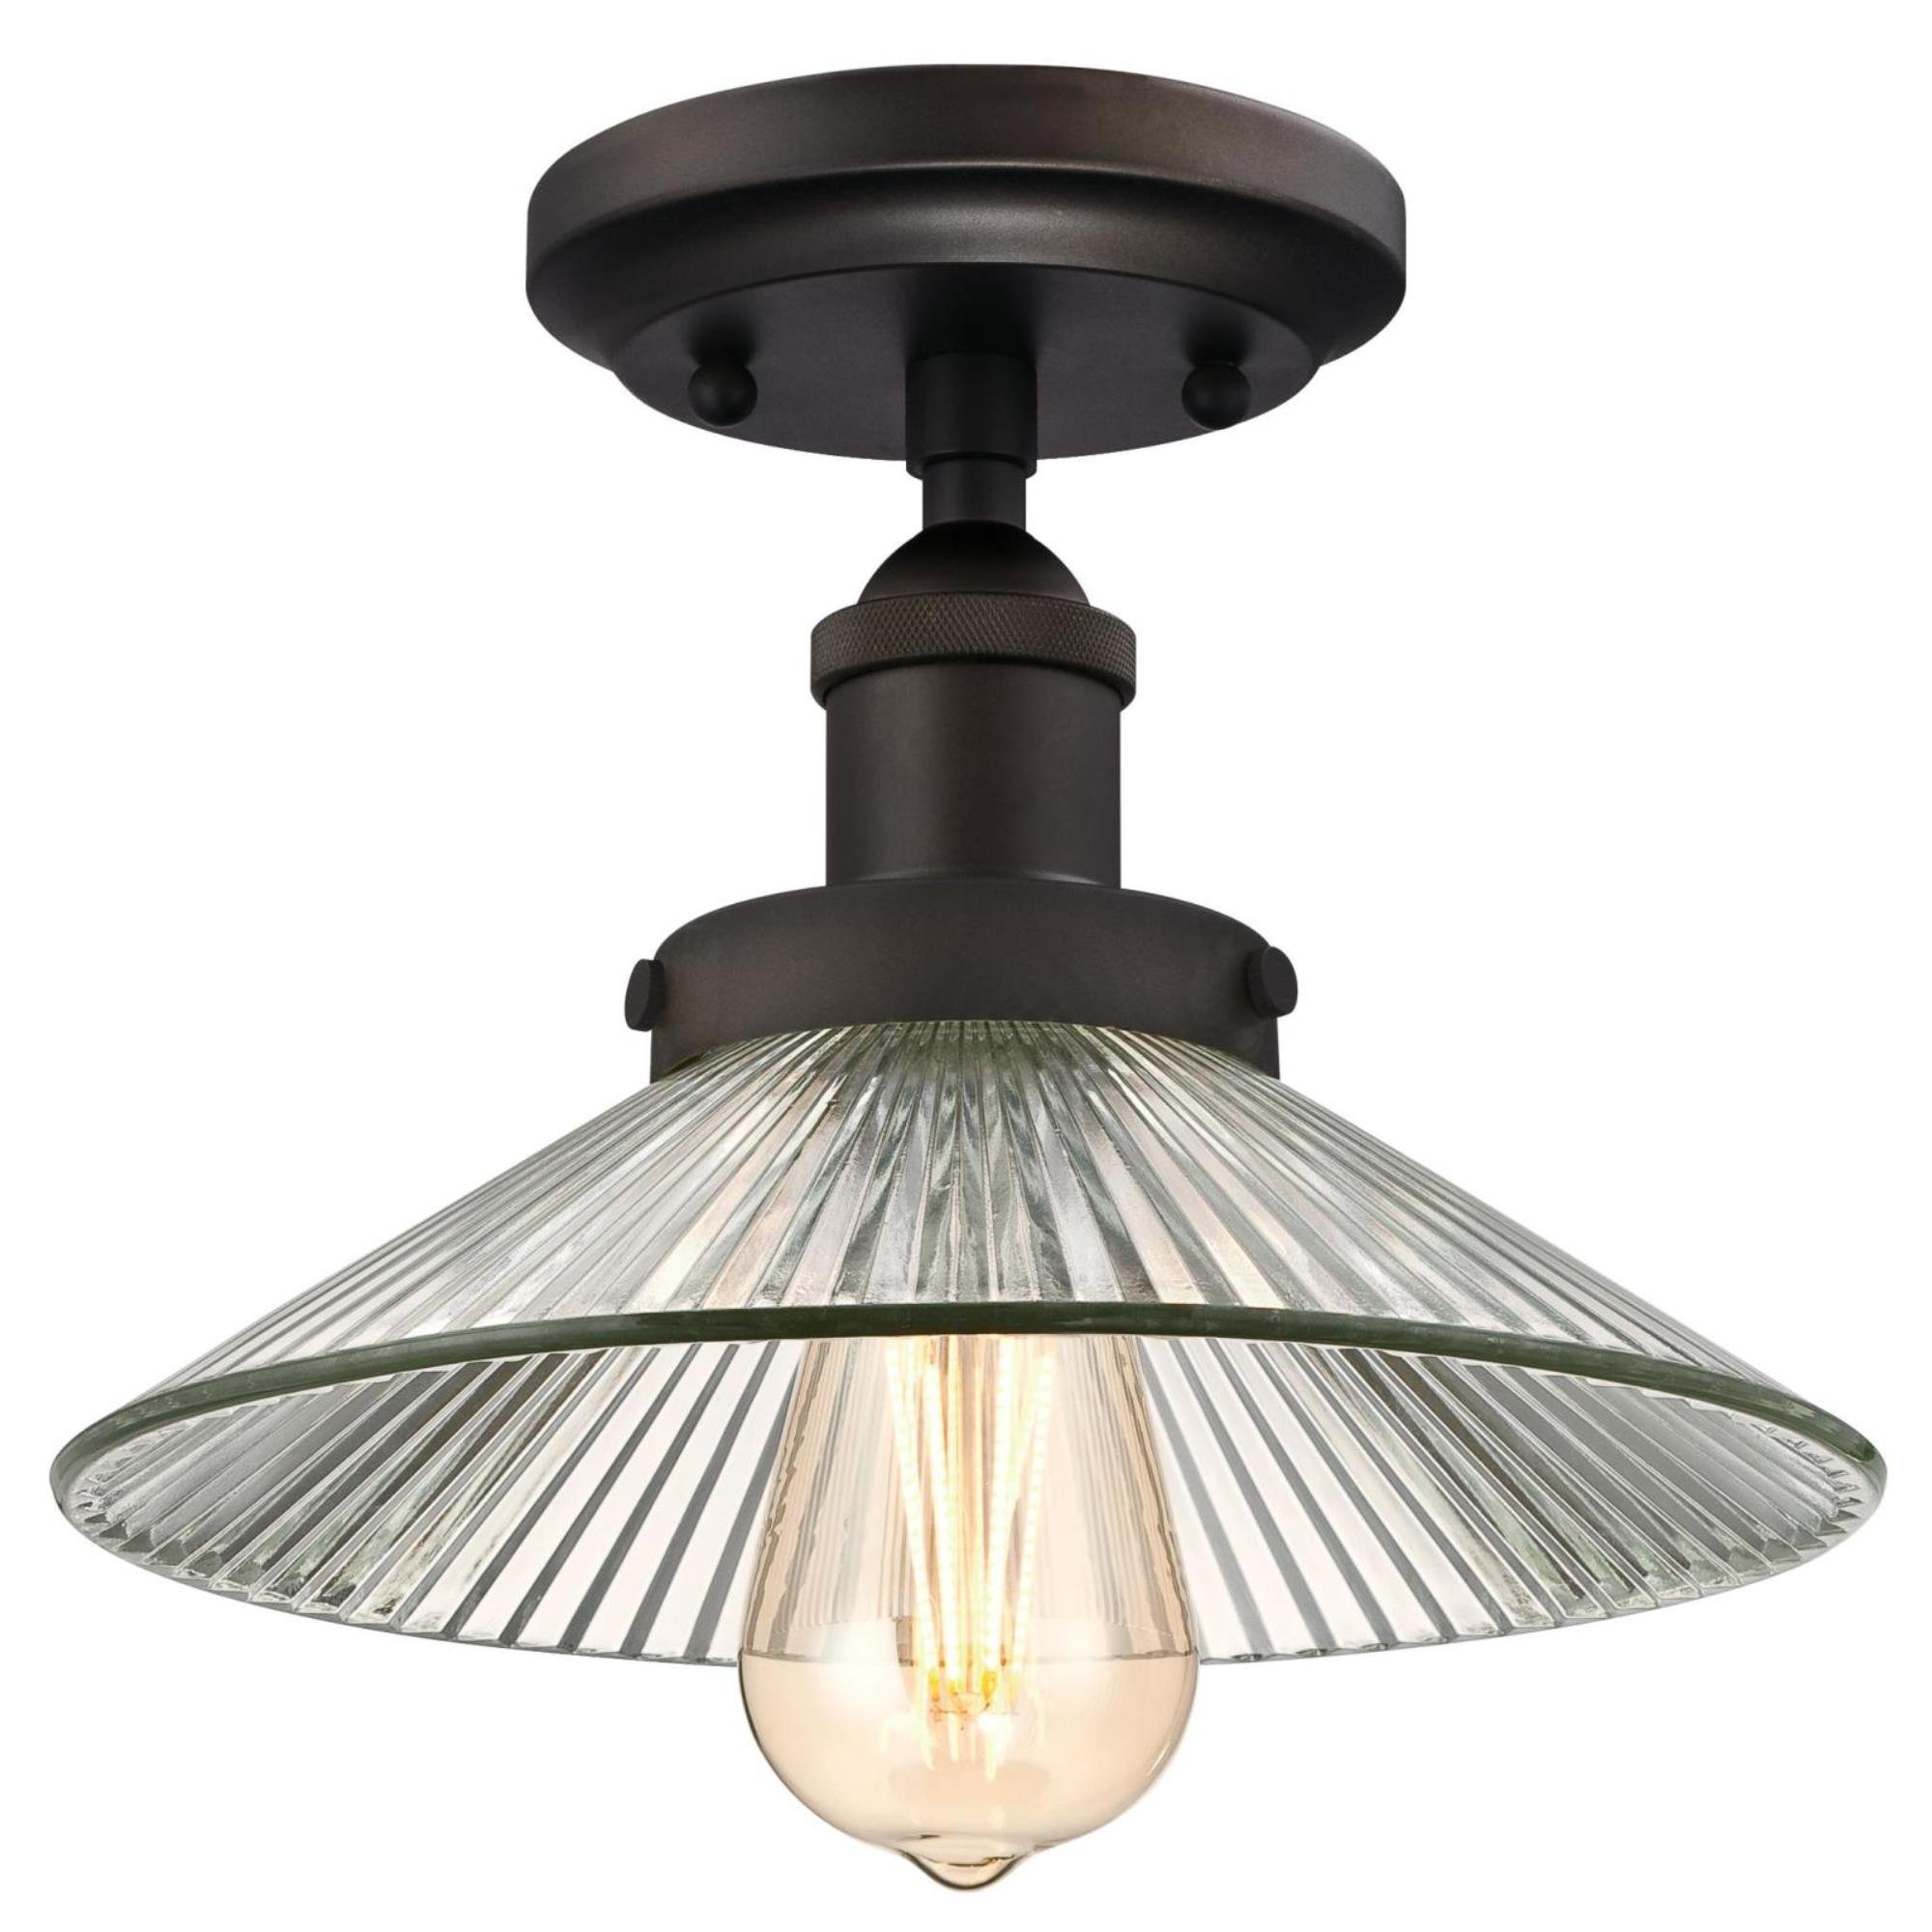 Westinghouse 6336100 Lexington One-Light Indoor Semi-Flush Ceiling Fixture, Oil Rubbed Bronze Finish with Clear Ribbed Glass